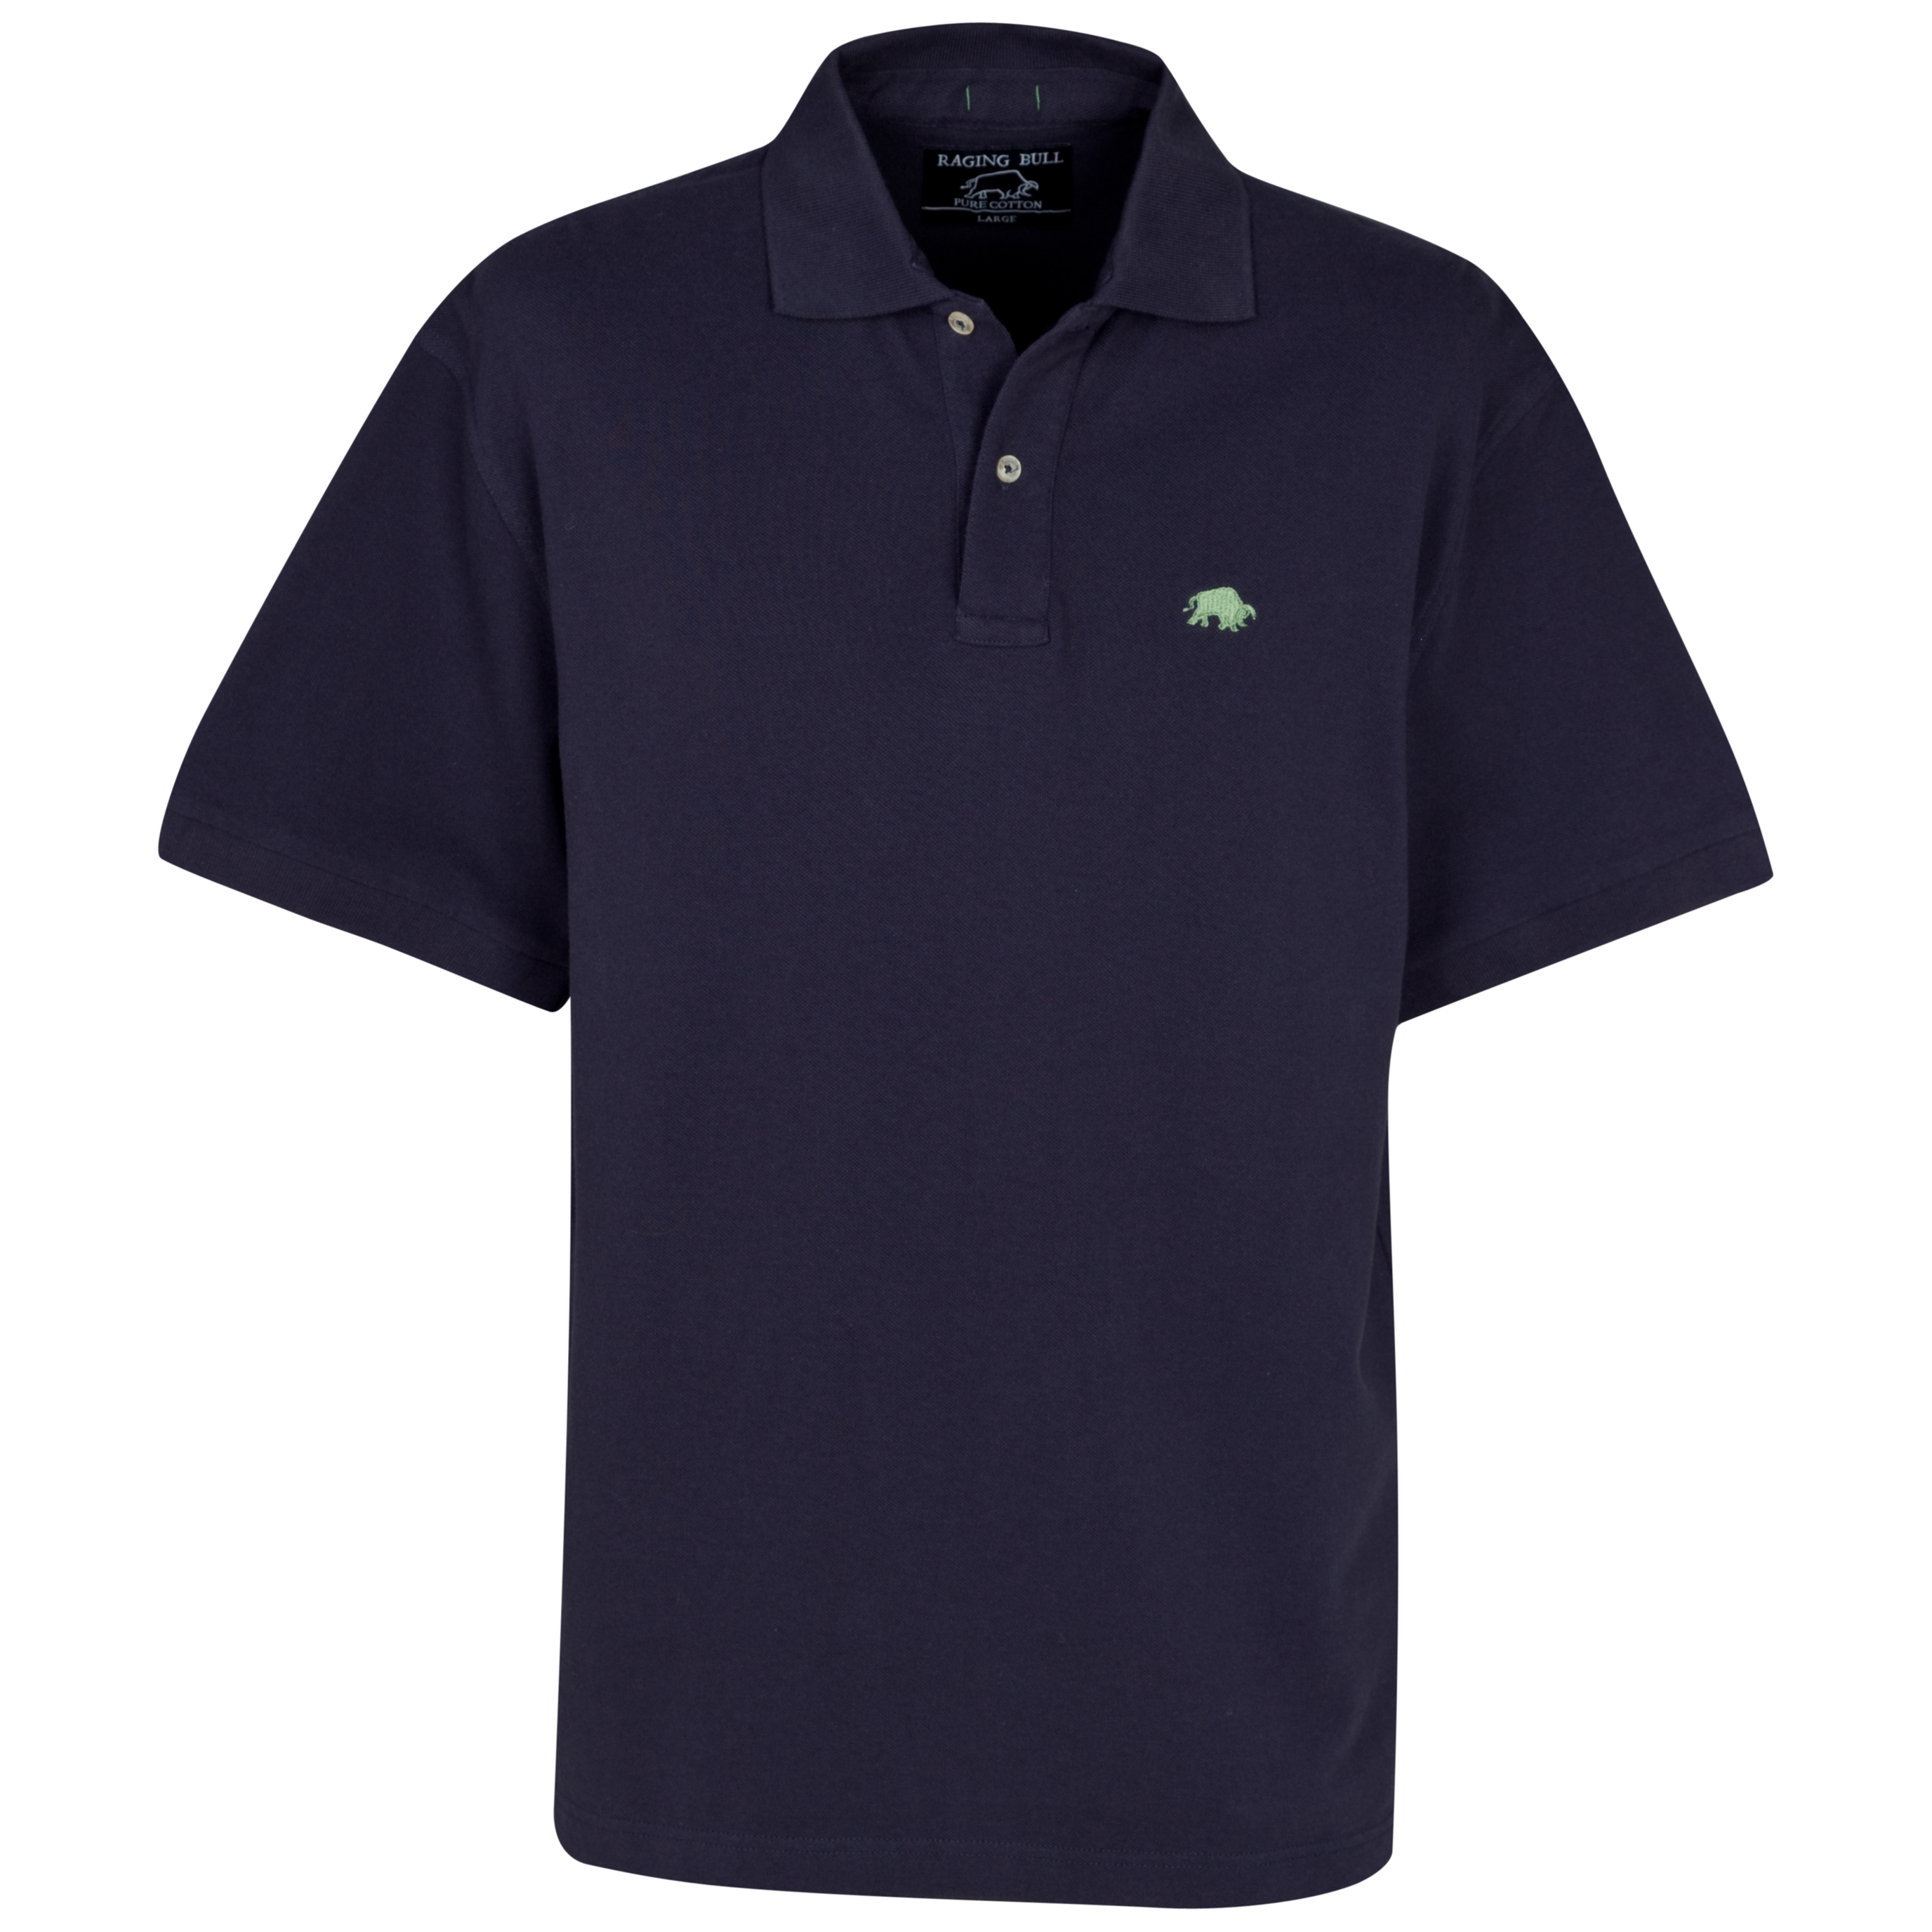 Raging Bull Signature Pique Polo - Navy